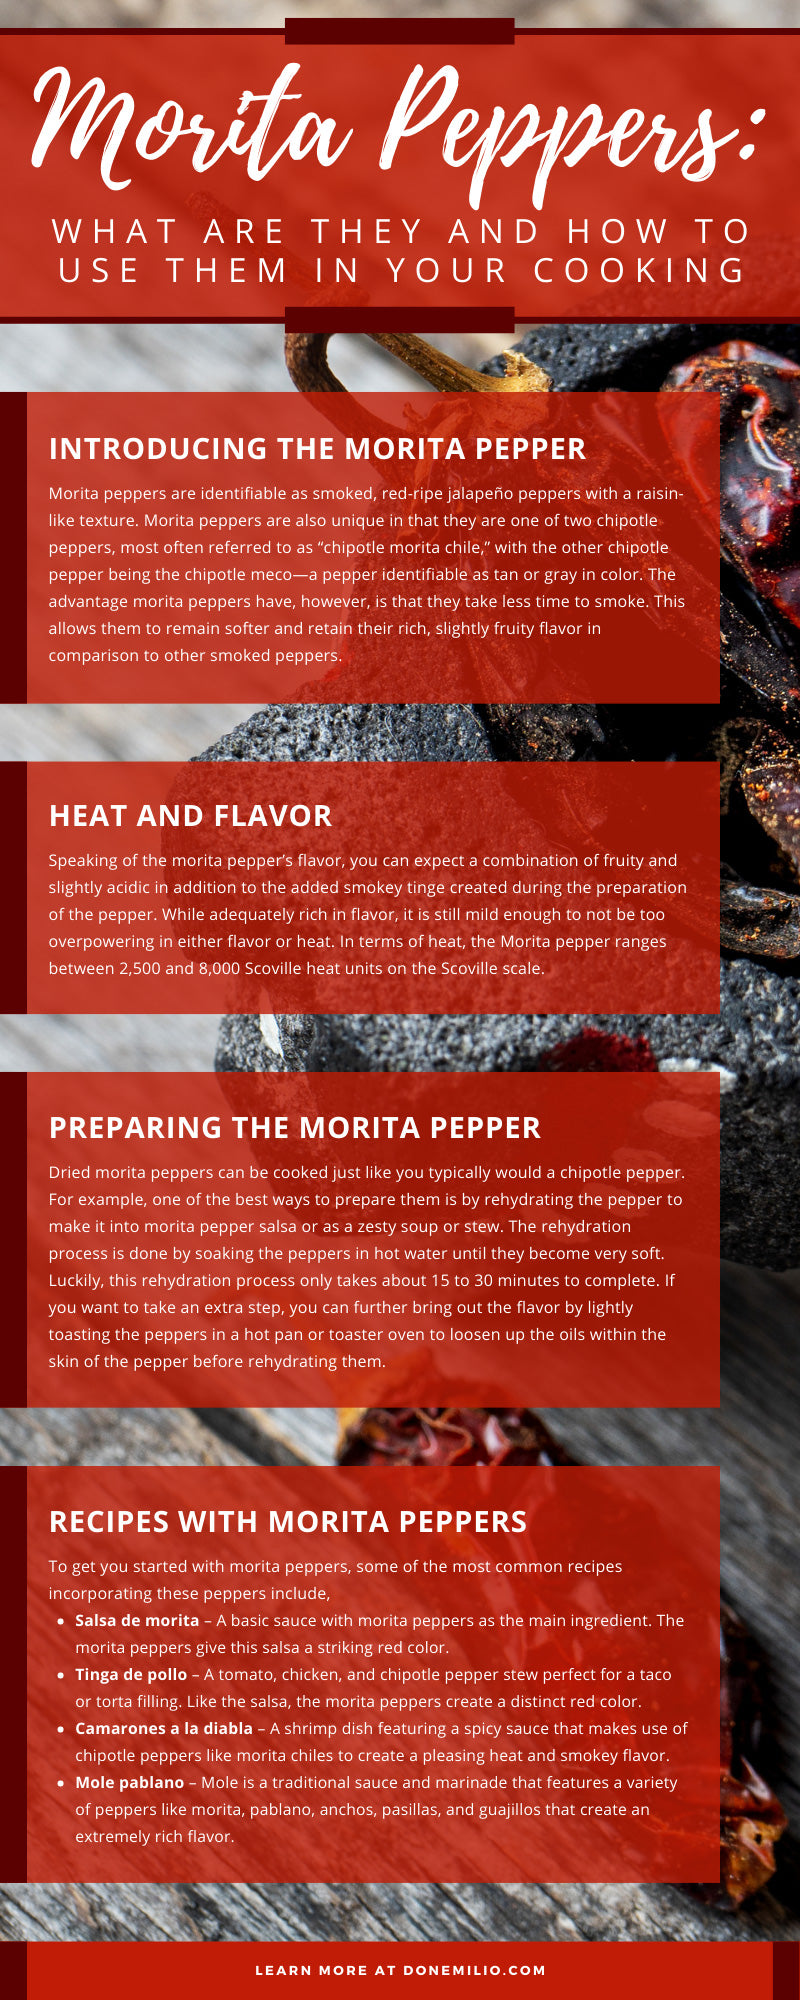 Morita Peppers: What Are They and How To Use Them in Your Cooking